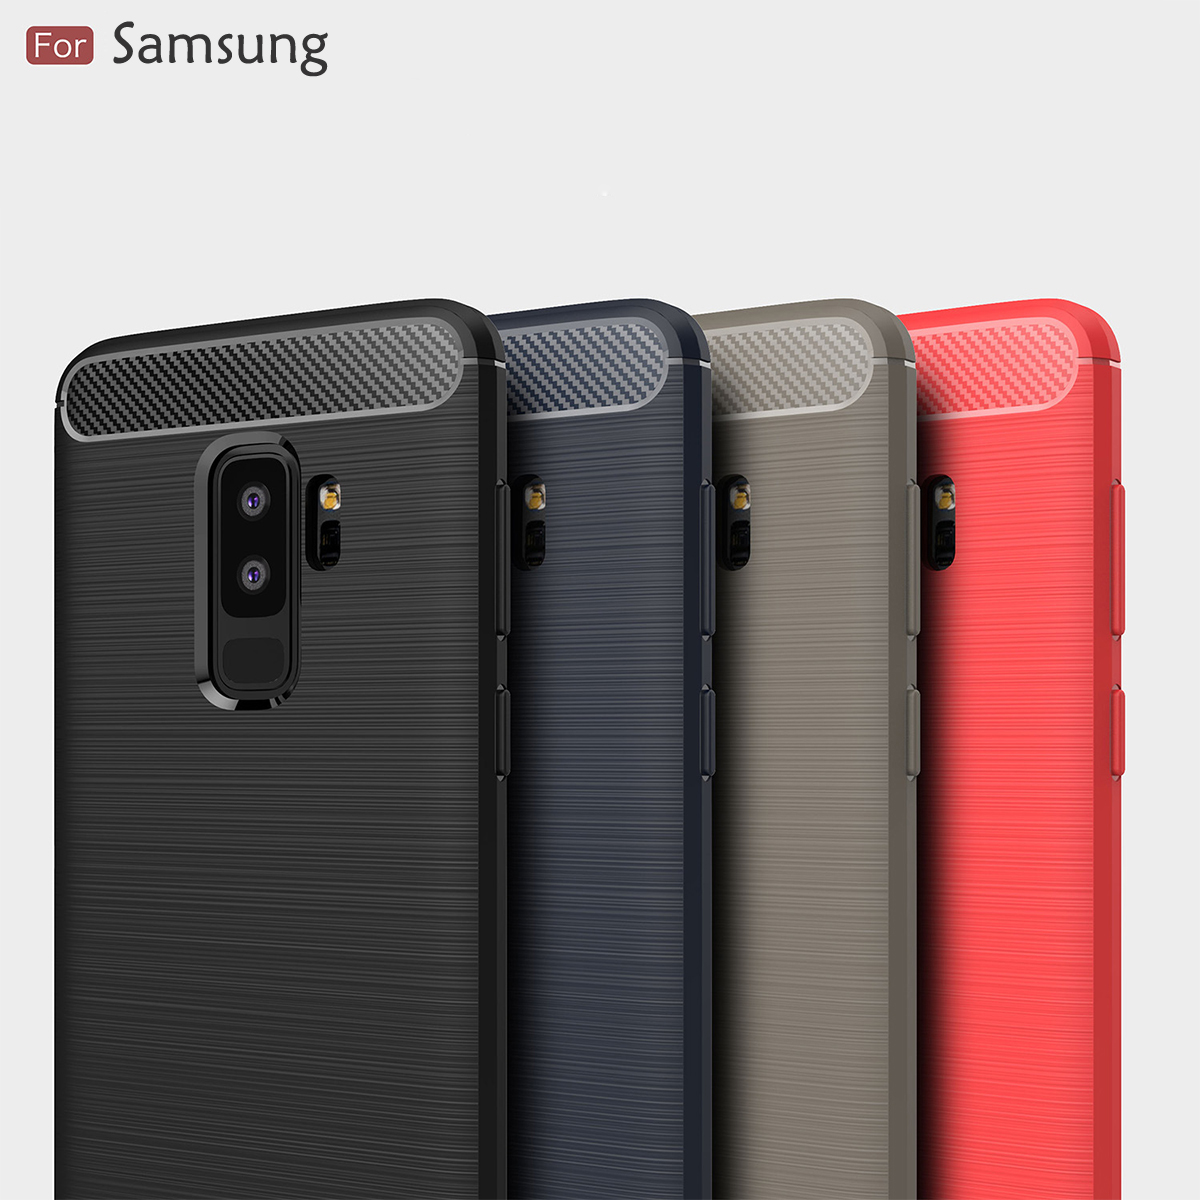 outlet store e4ef1 1a088 Samsung Galaxy S9 Plus J1 Ace J2 Pro 2018 Brushed TPU Soft Case Cover